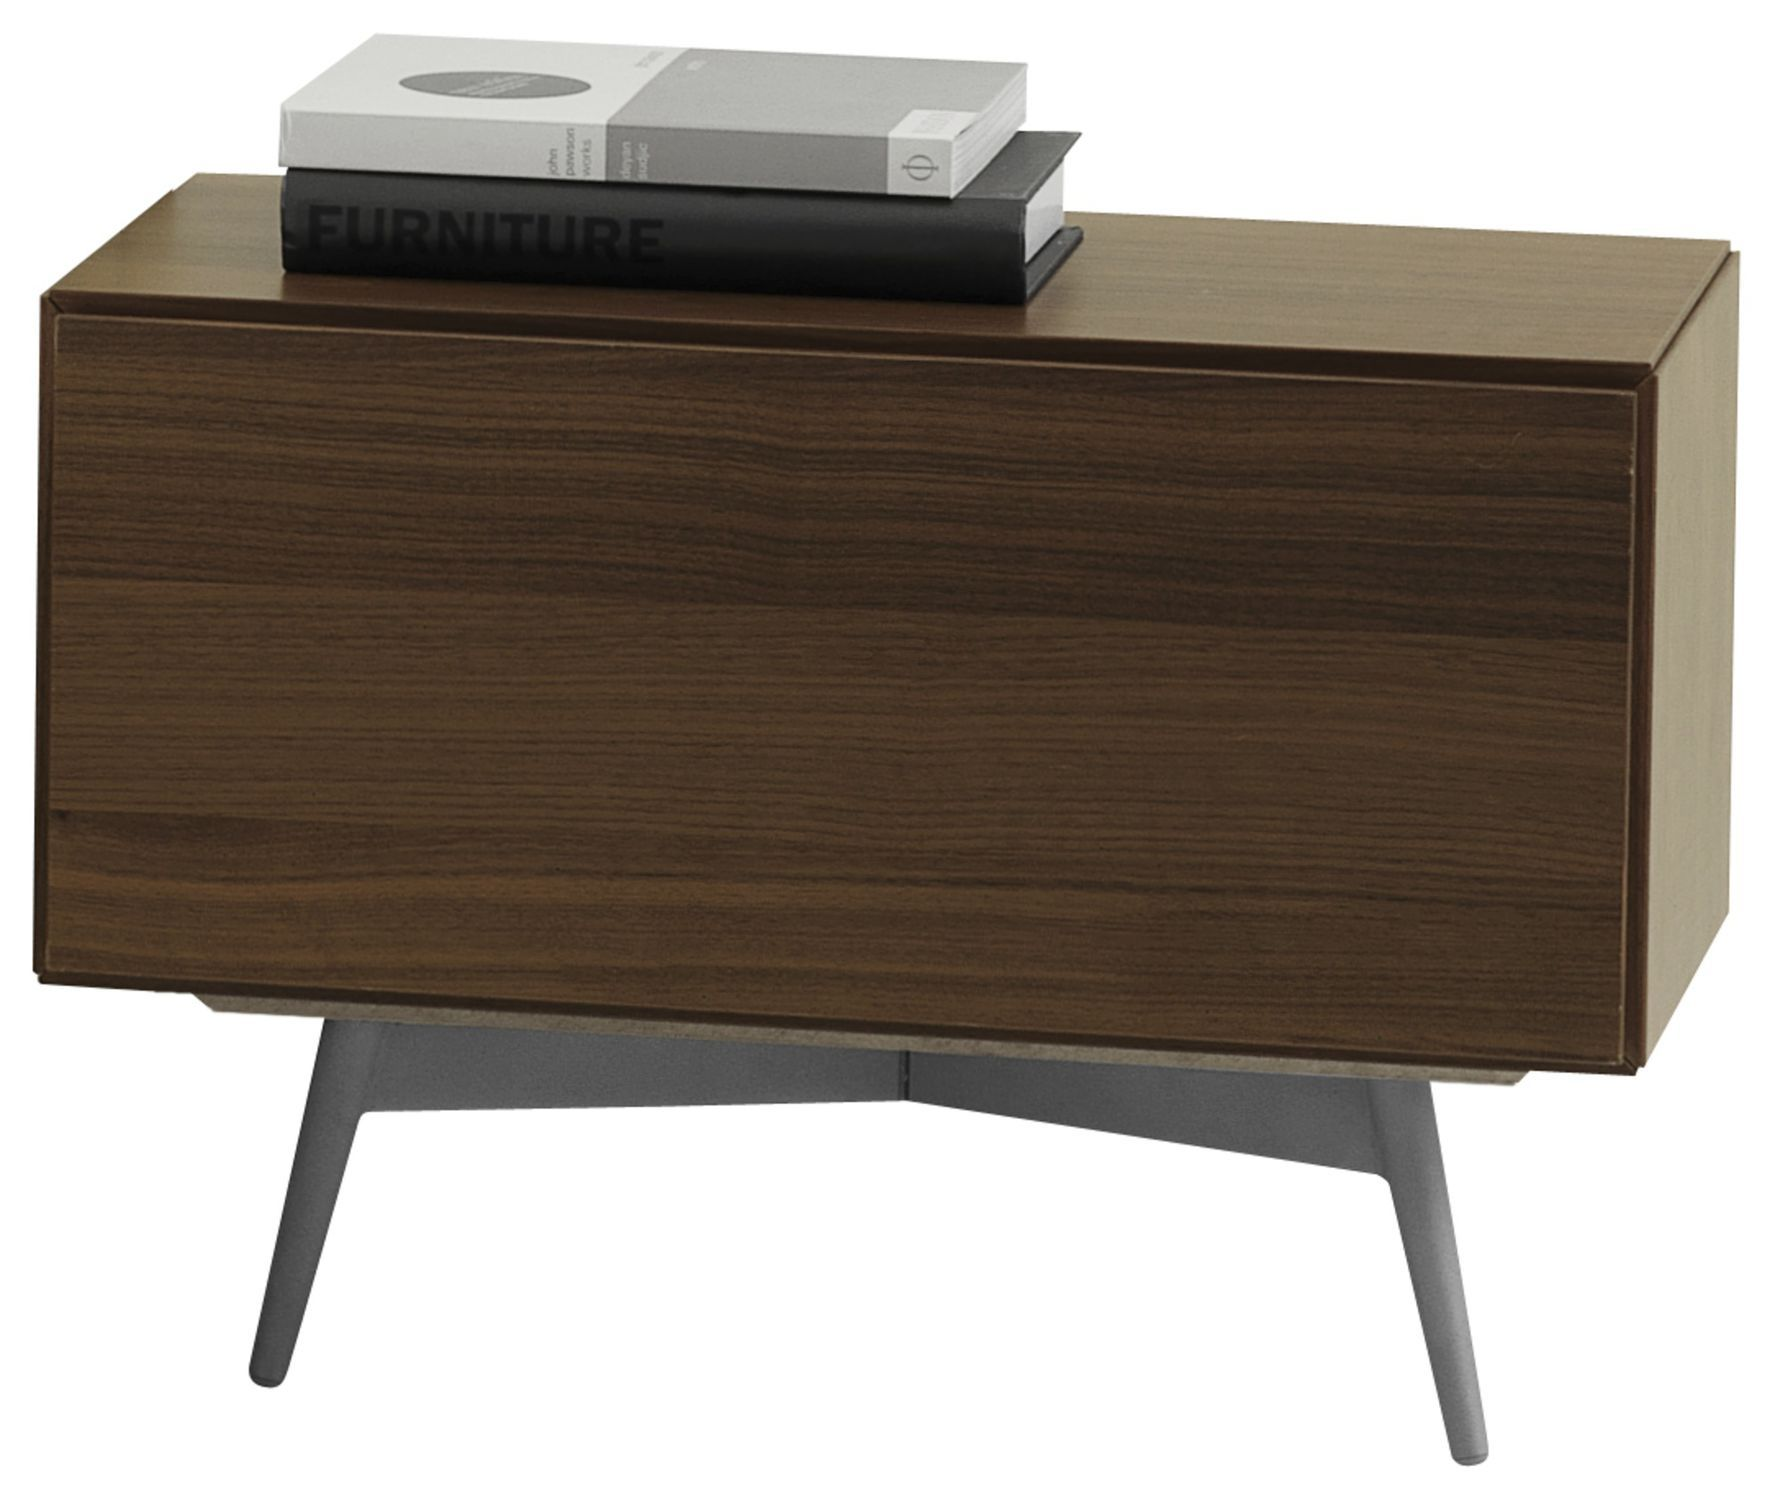 Bedside Stand contemporary bedside table / mdf / steel / rectangular - lugano